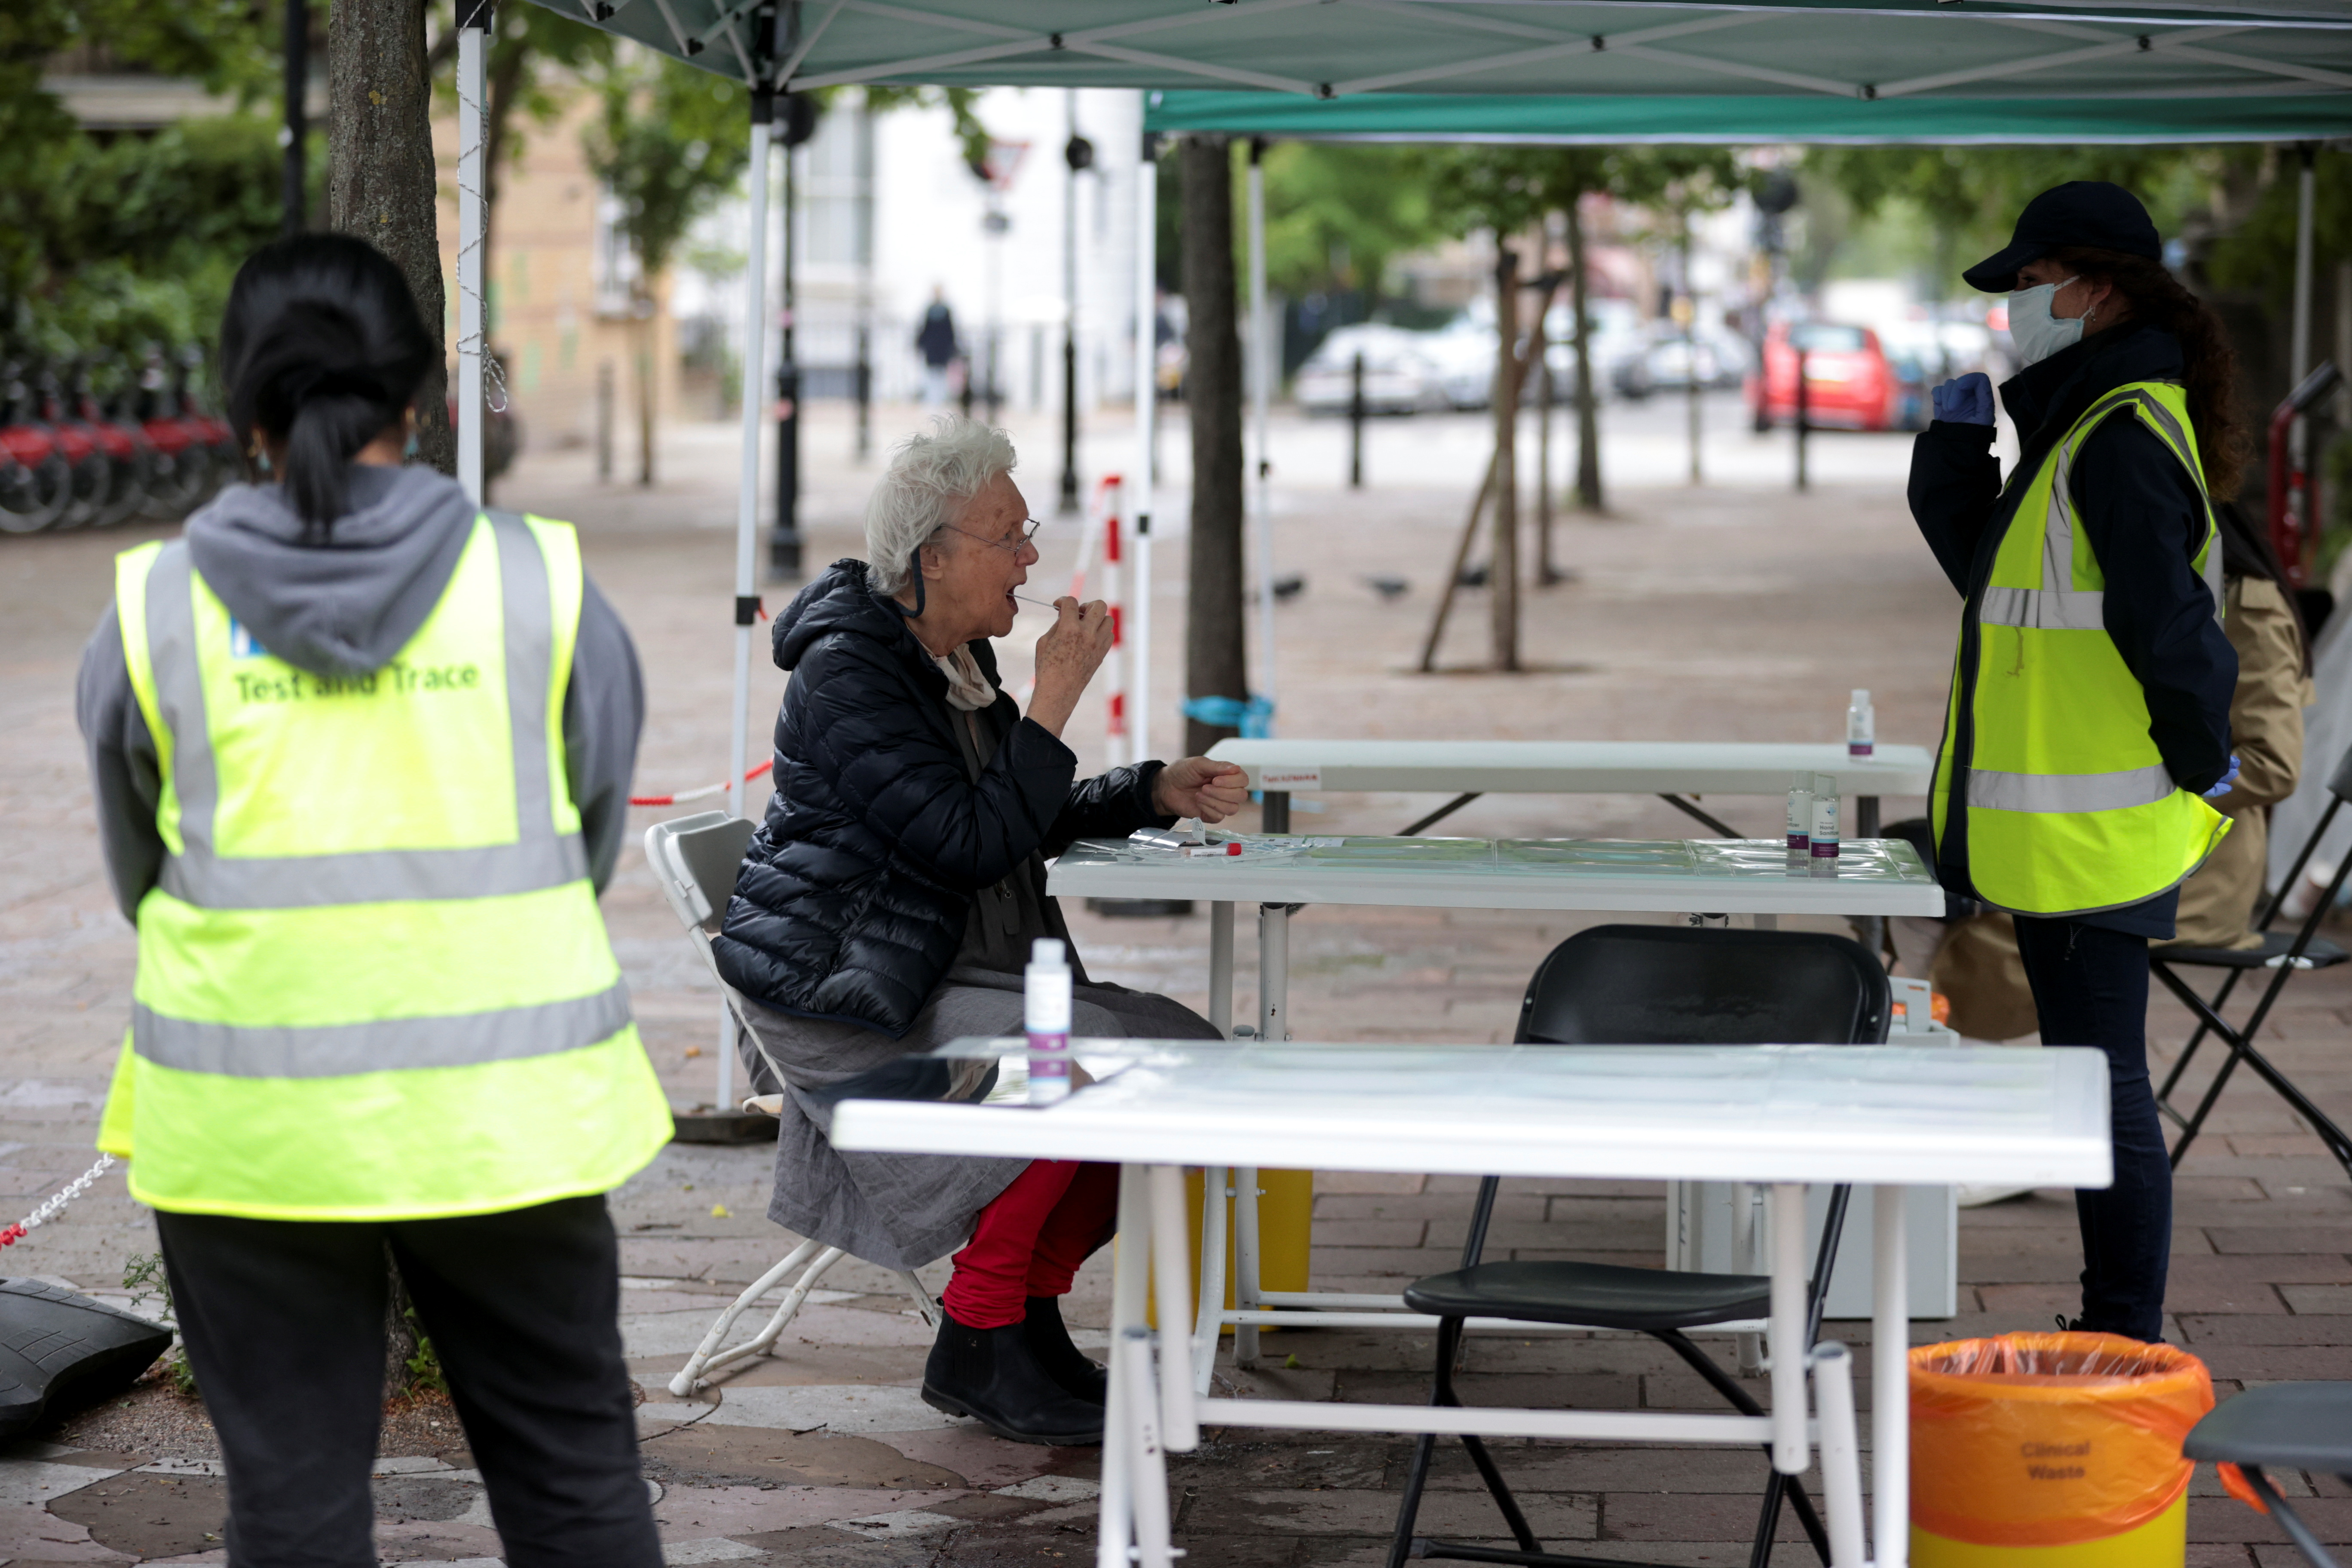 A person takes a swab sample for the coronavirus disease (COVID-19) at a surge testing site in London, Britain, May 14, 2021. REUTERS/Hannah McKay